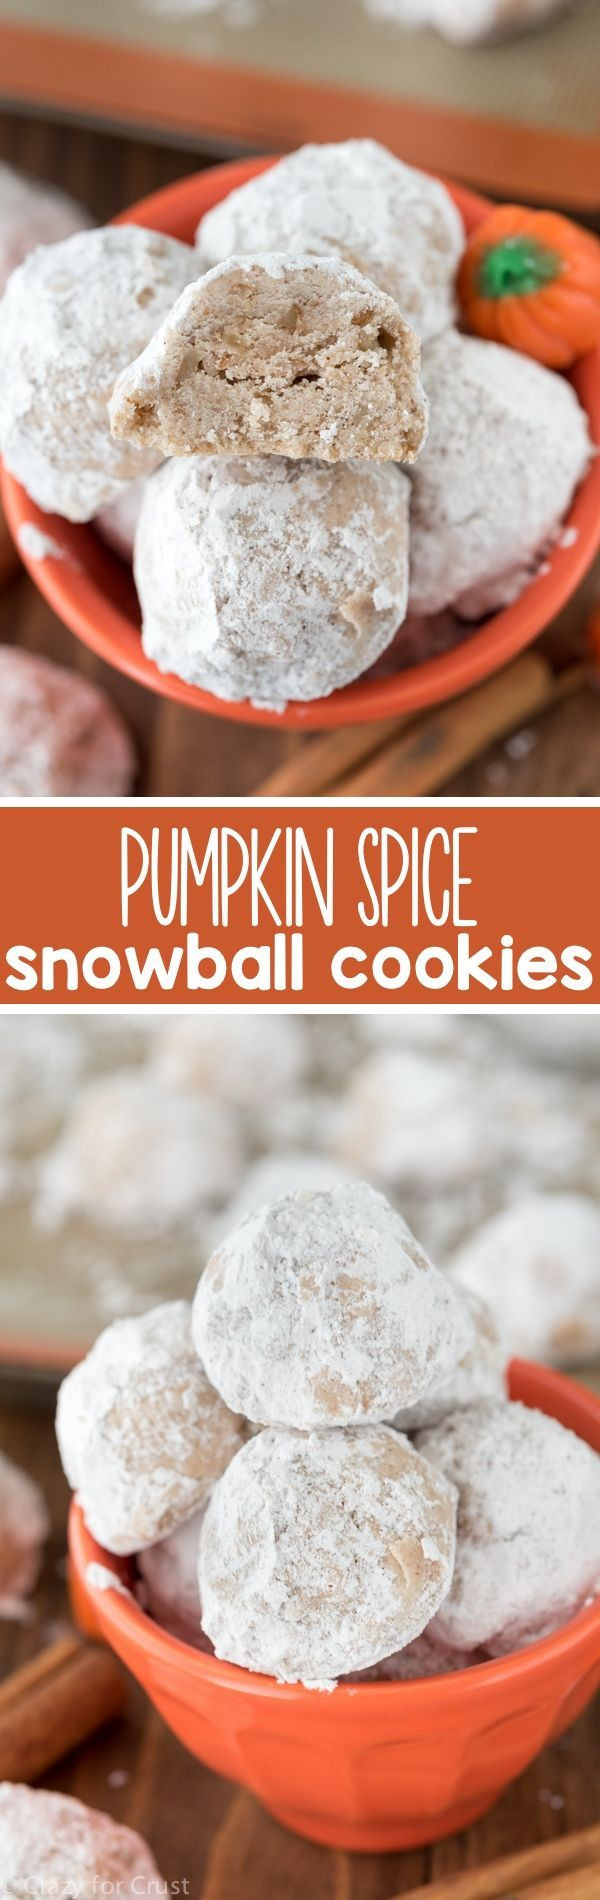 Fall Cookies Recipe  These Easy Pumpkin Spice Snowball Cookies are a family